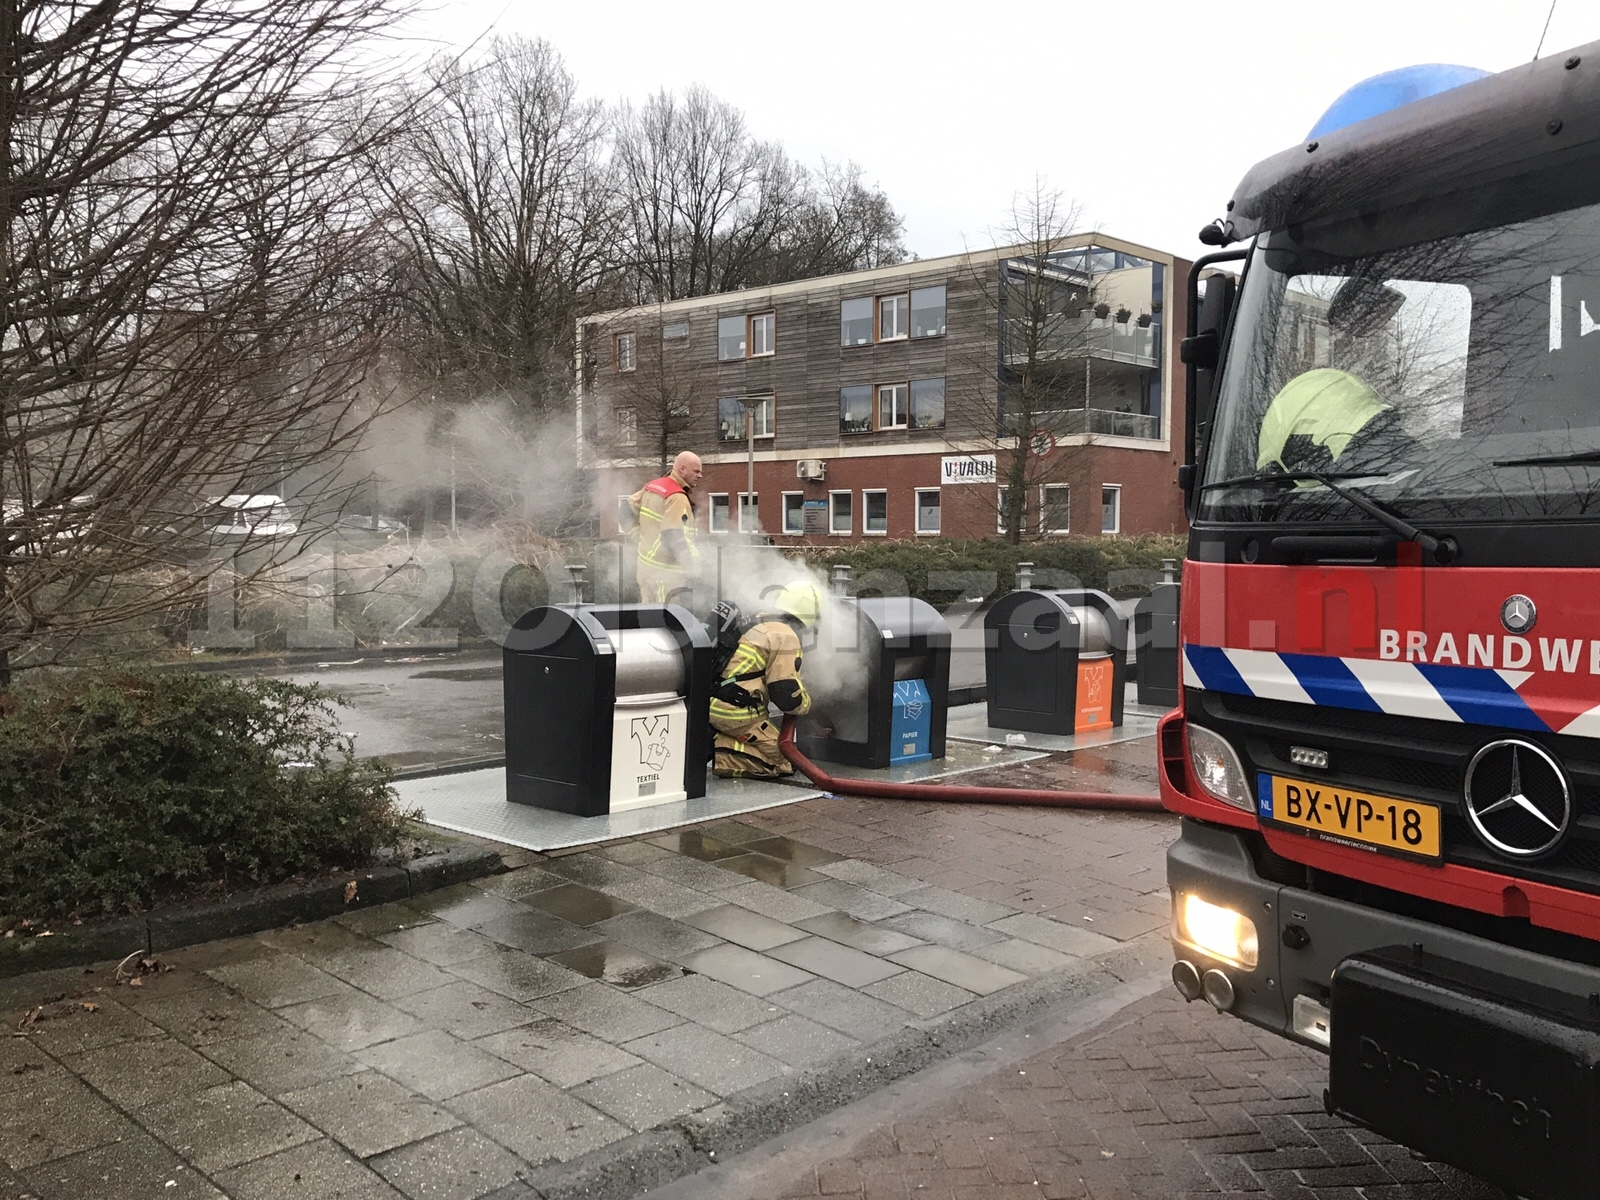 Brandweer blust containerbrand in Oldenzaal